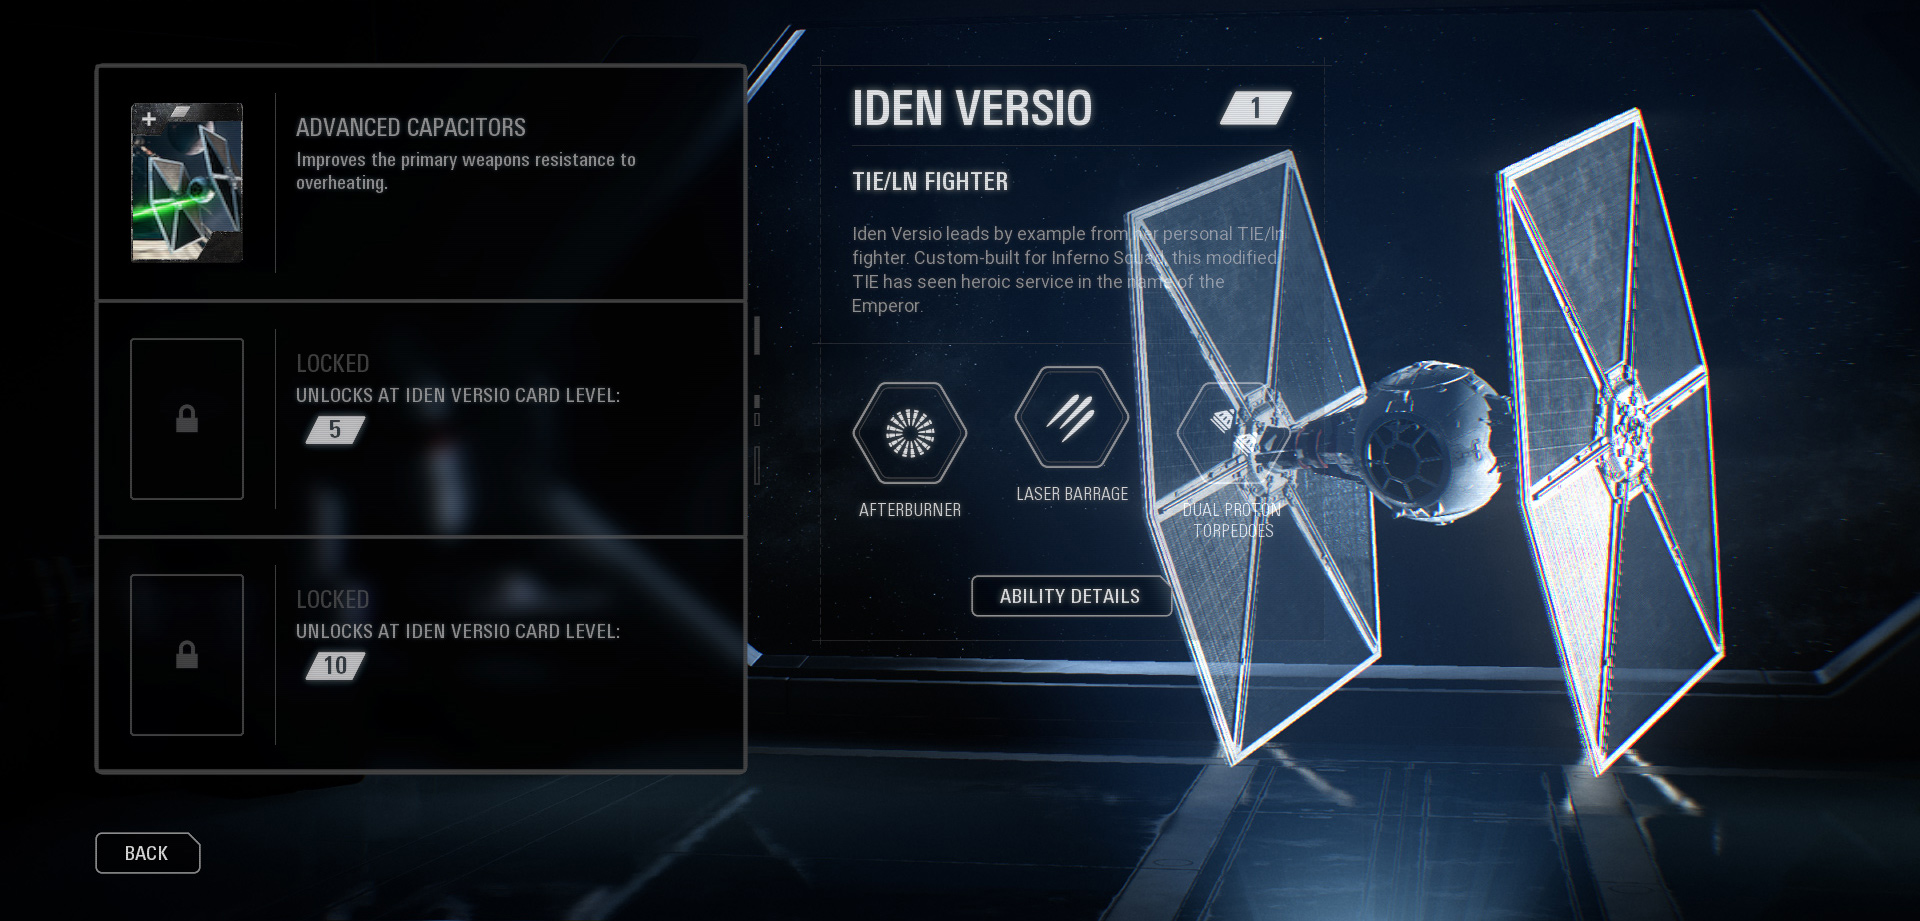 Star Wars Battlefront II patch brings a new hero ship and balance changes screenshot